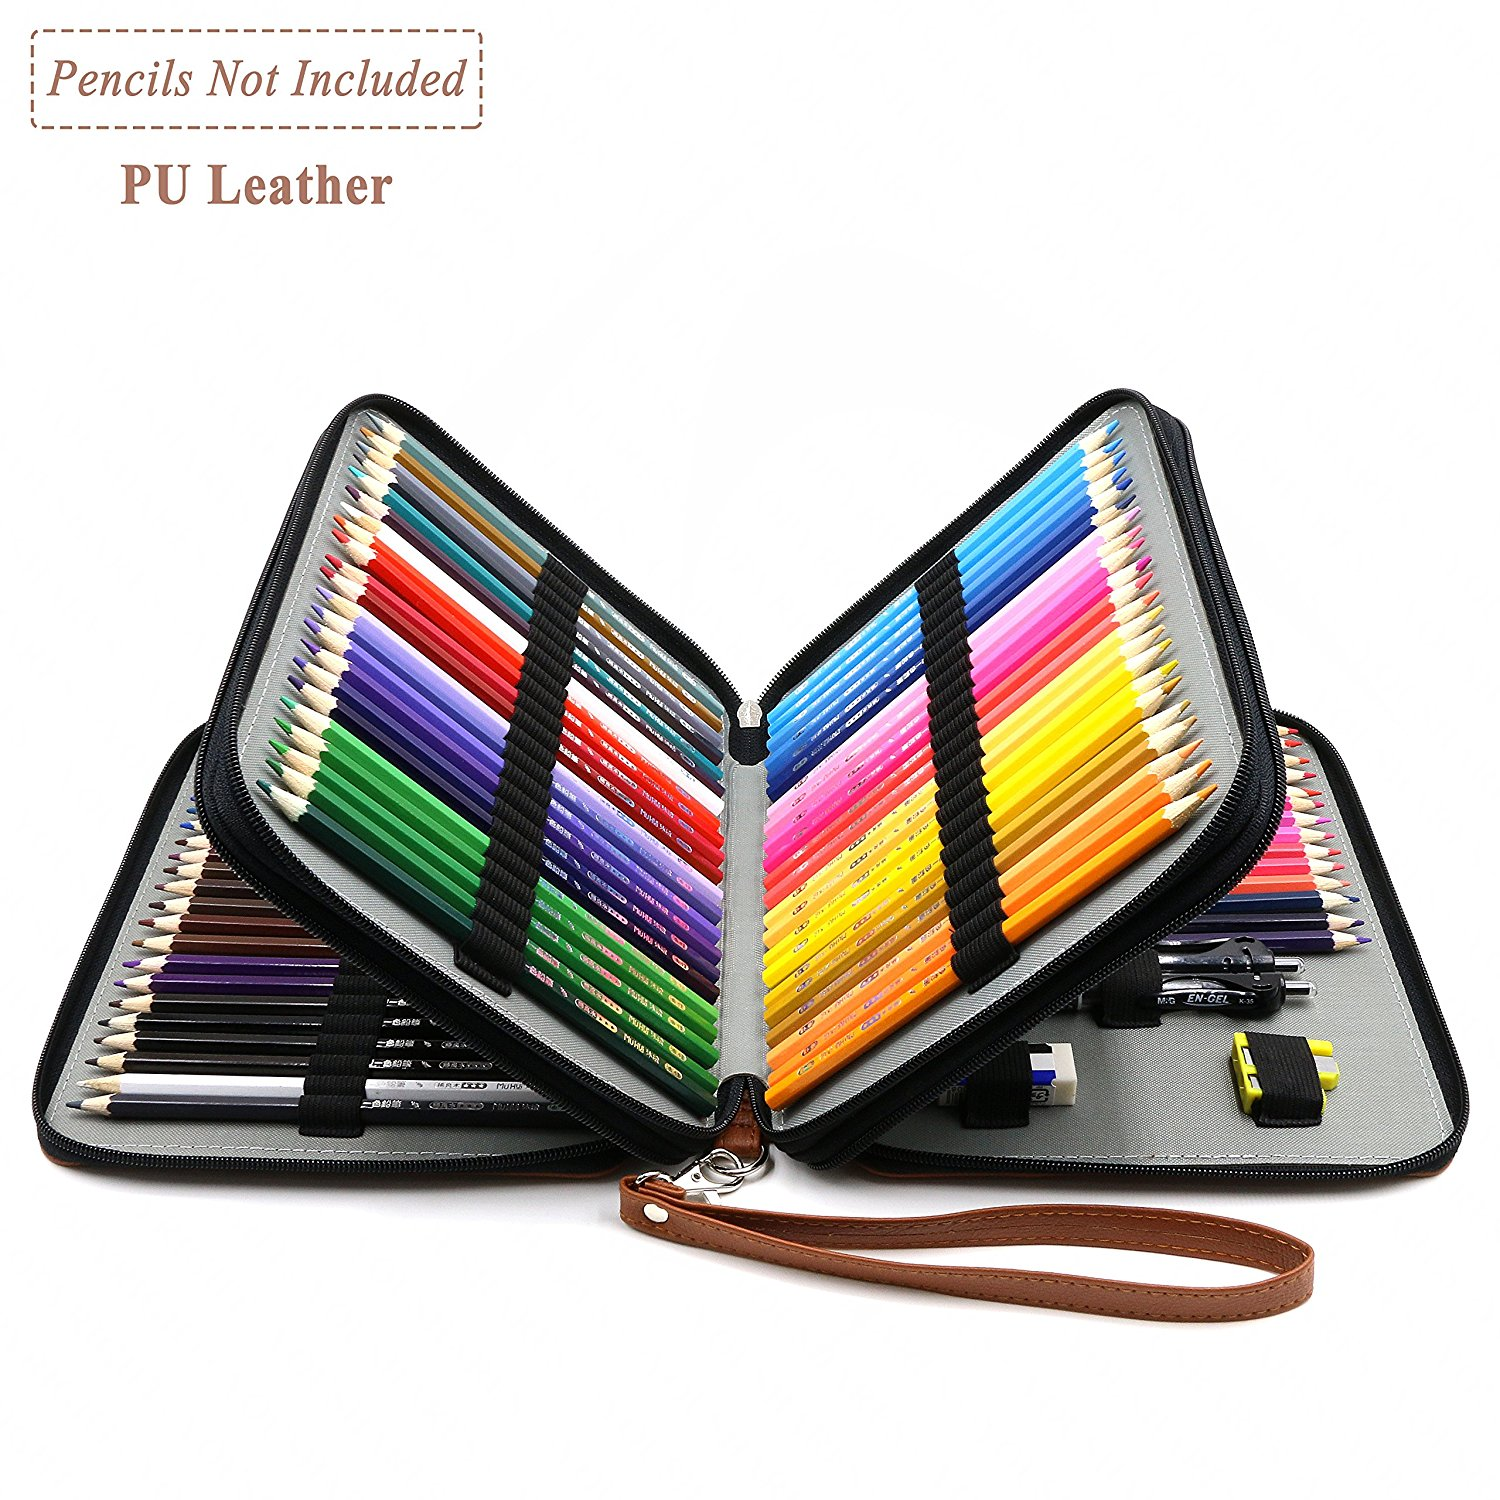 YOUSHARES 120 Slots Pencil Case - PU Leather Handy Multi-layer Large Zipper Pen Bag with Handle Strap for Prismacolor Watercolor Pencils, Crayola Colored Pencils, Marco Pens and Makeup Brush (Brown)